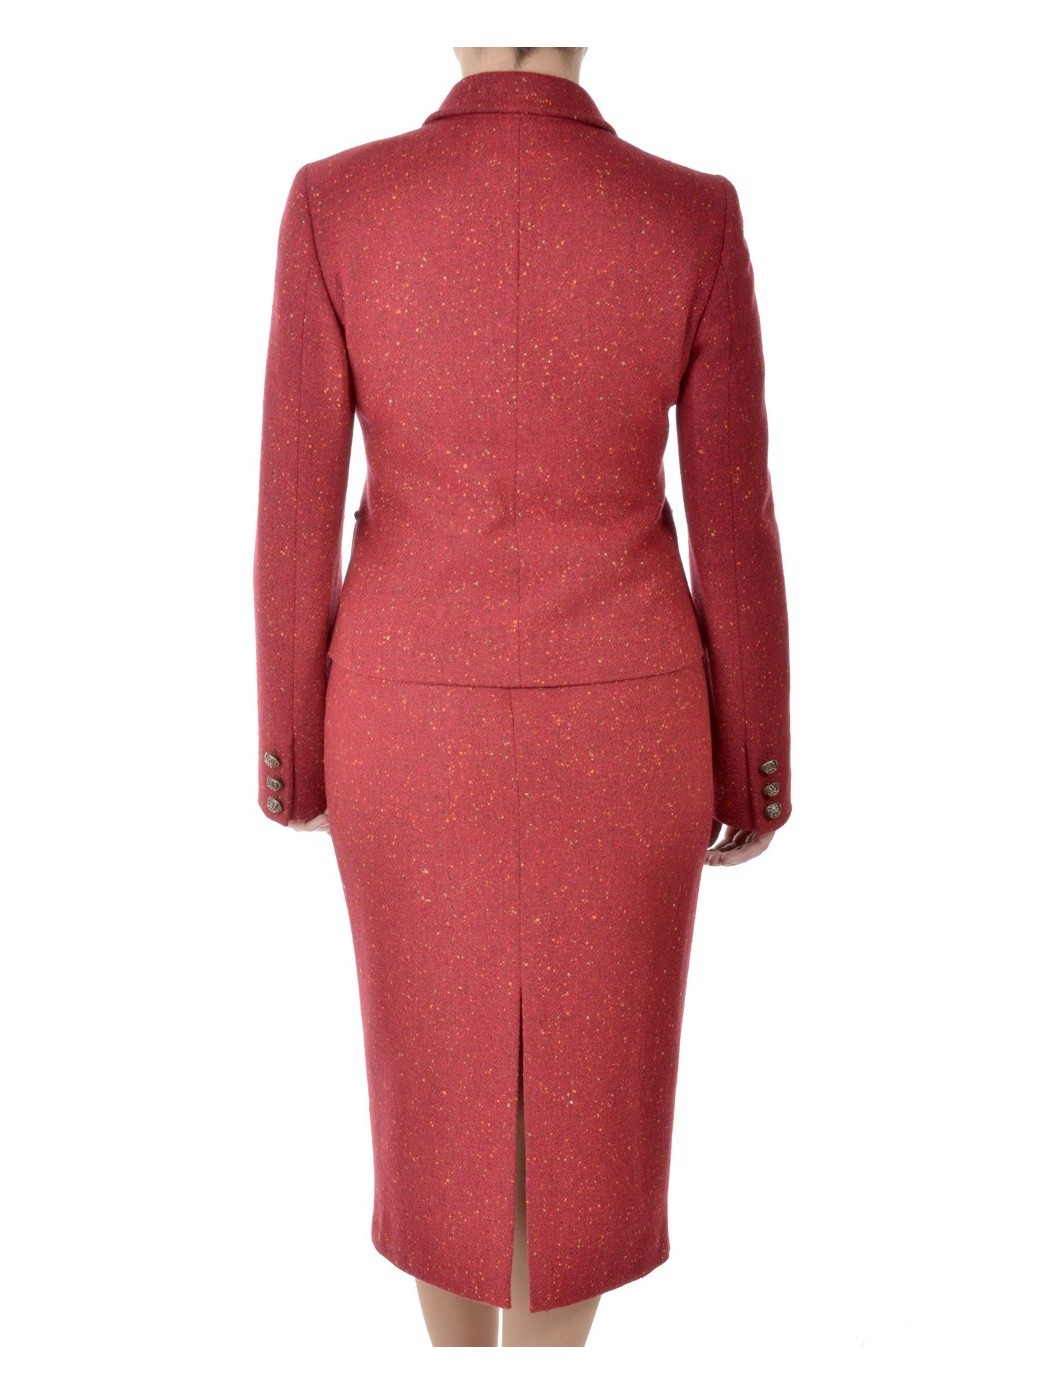 Red tweed suit by Hella